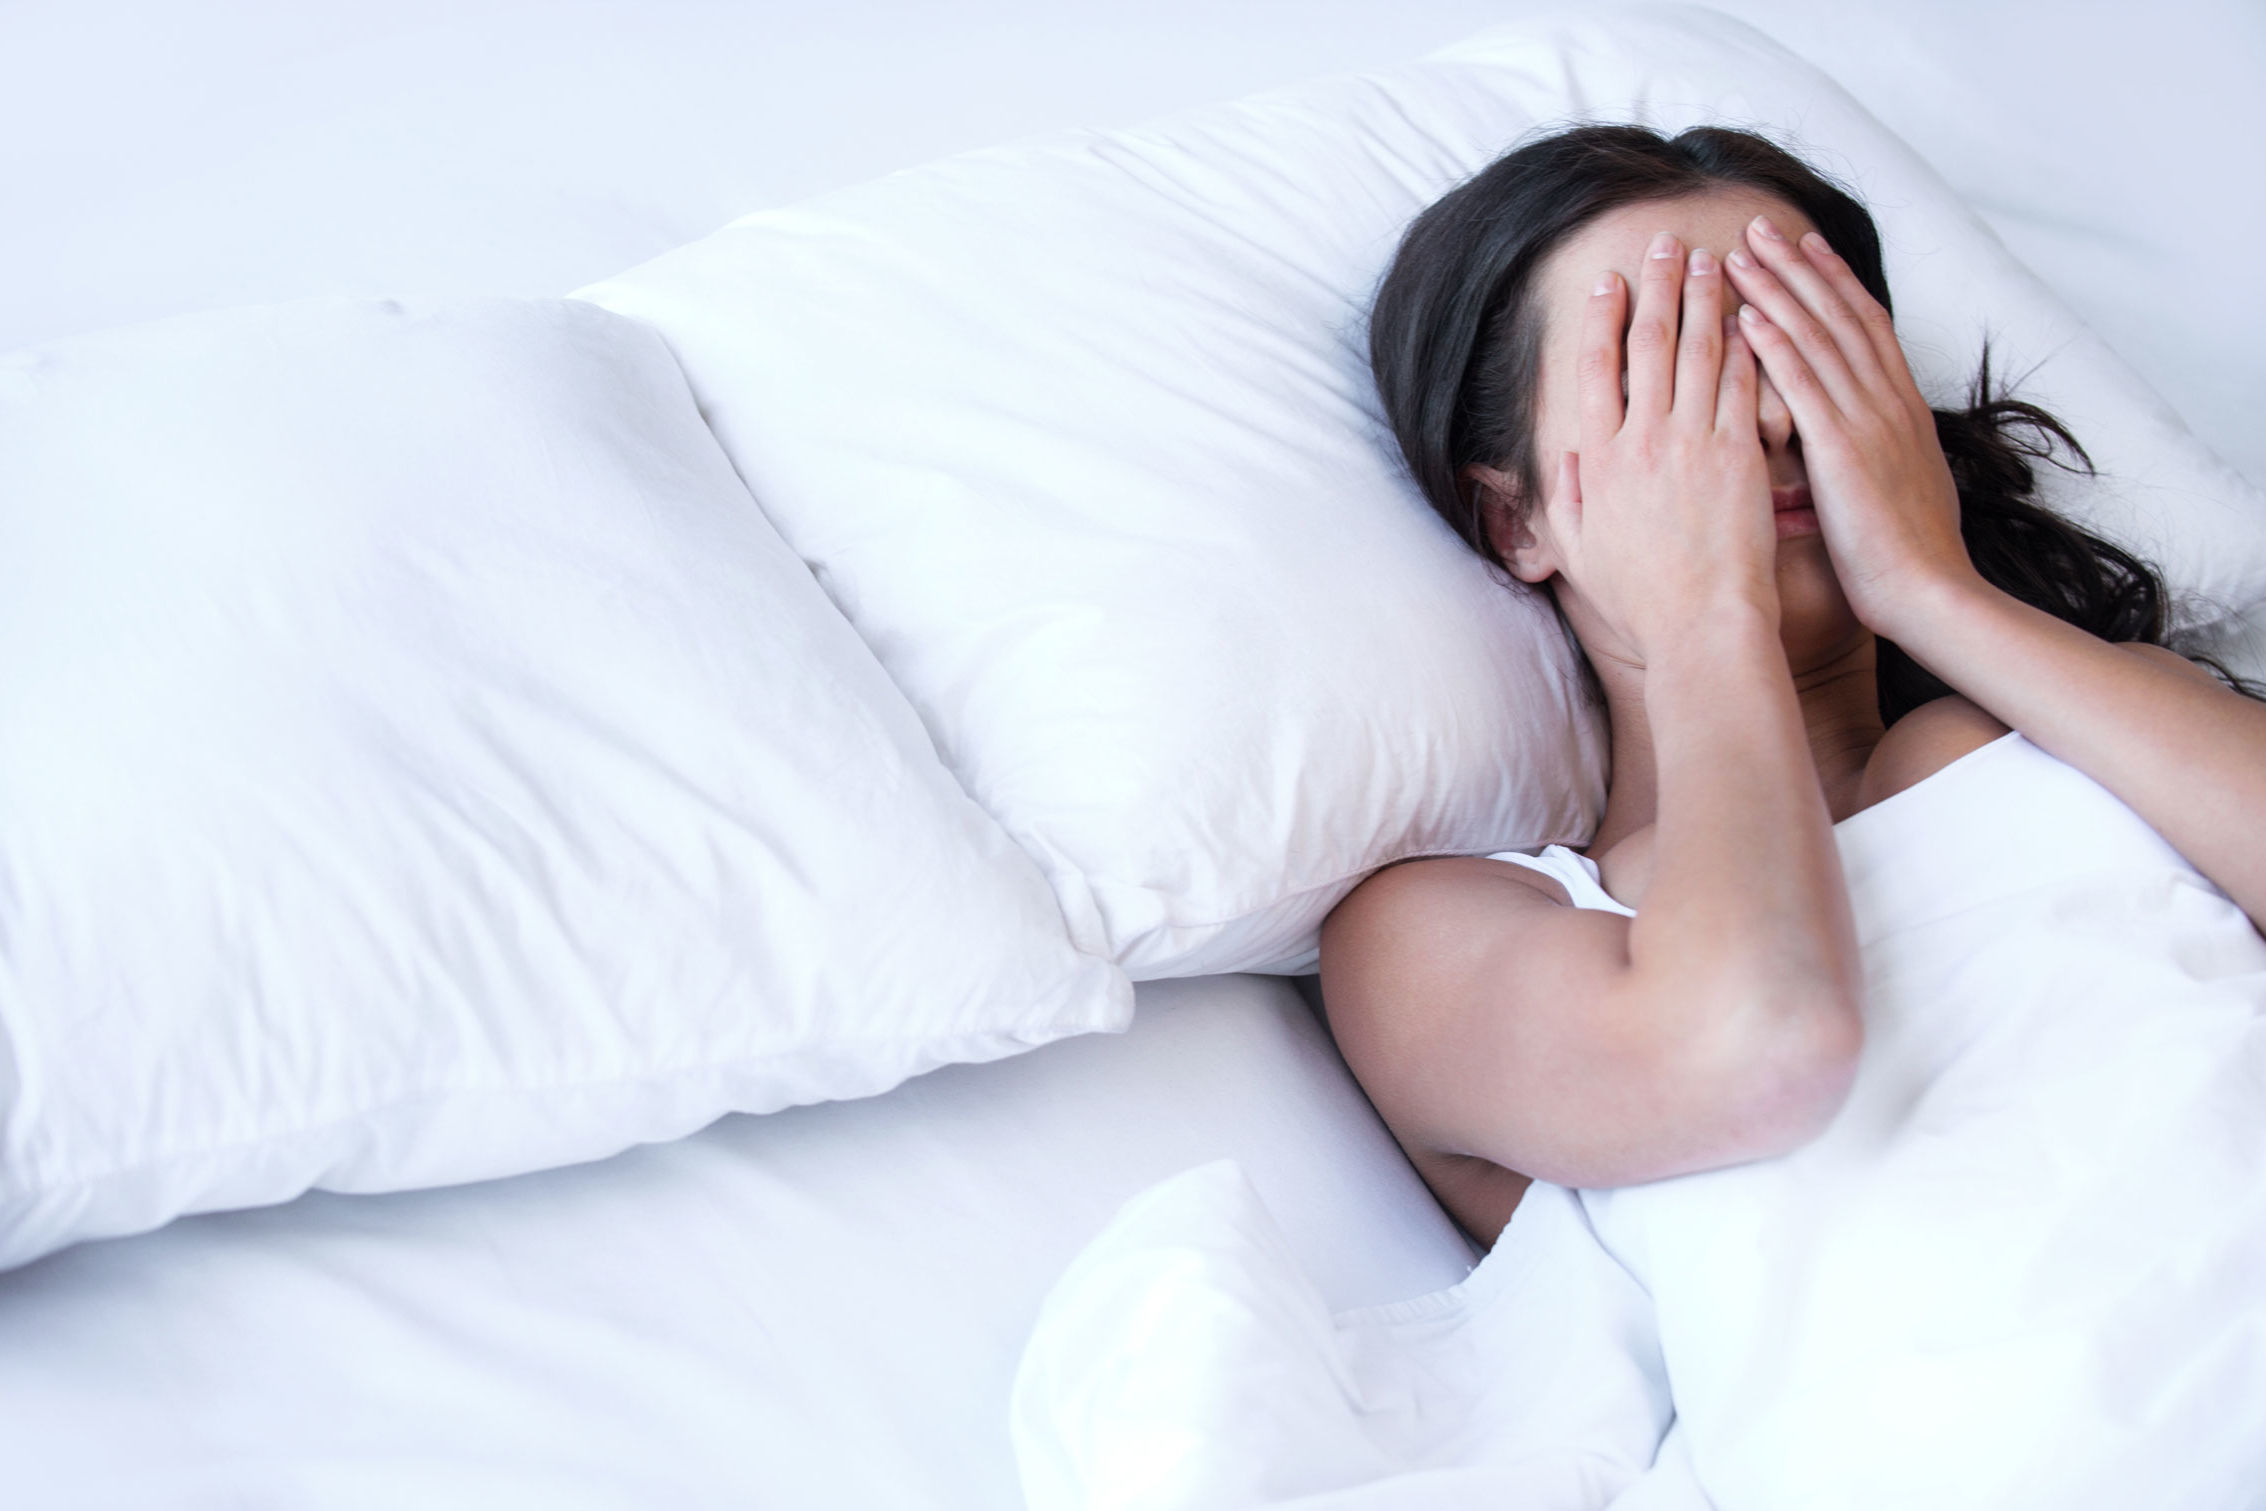 Why Does Your Body Twitch As You're Falling Asleep?